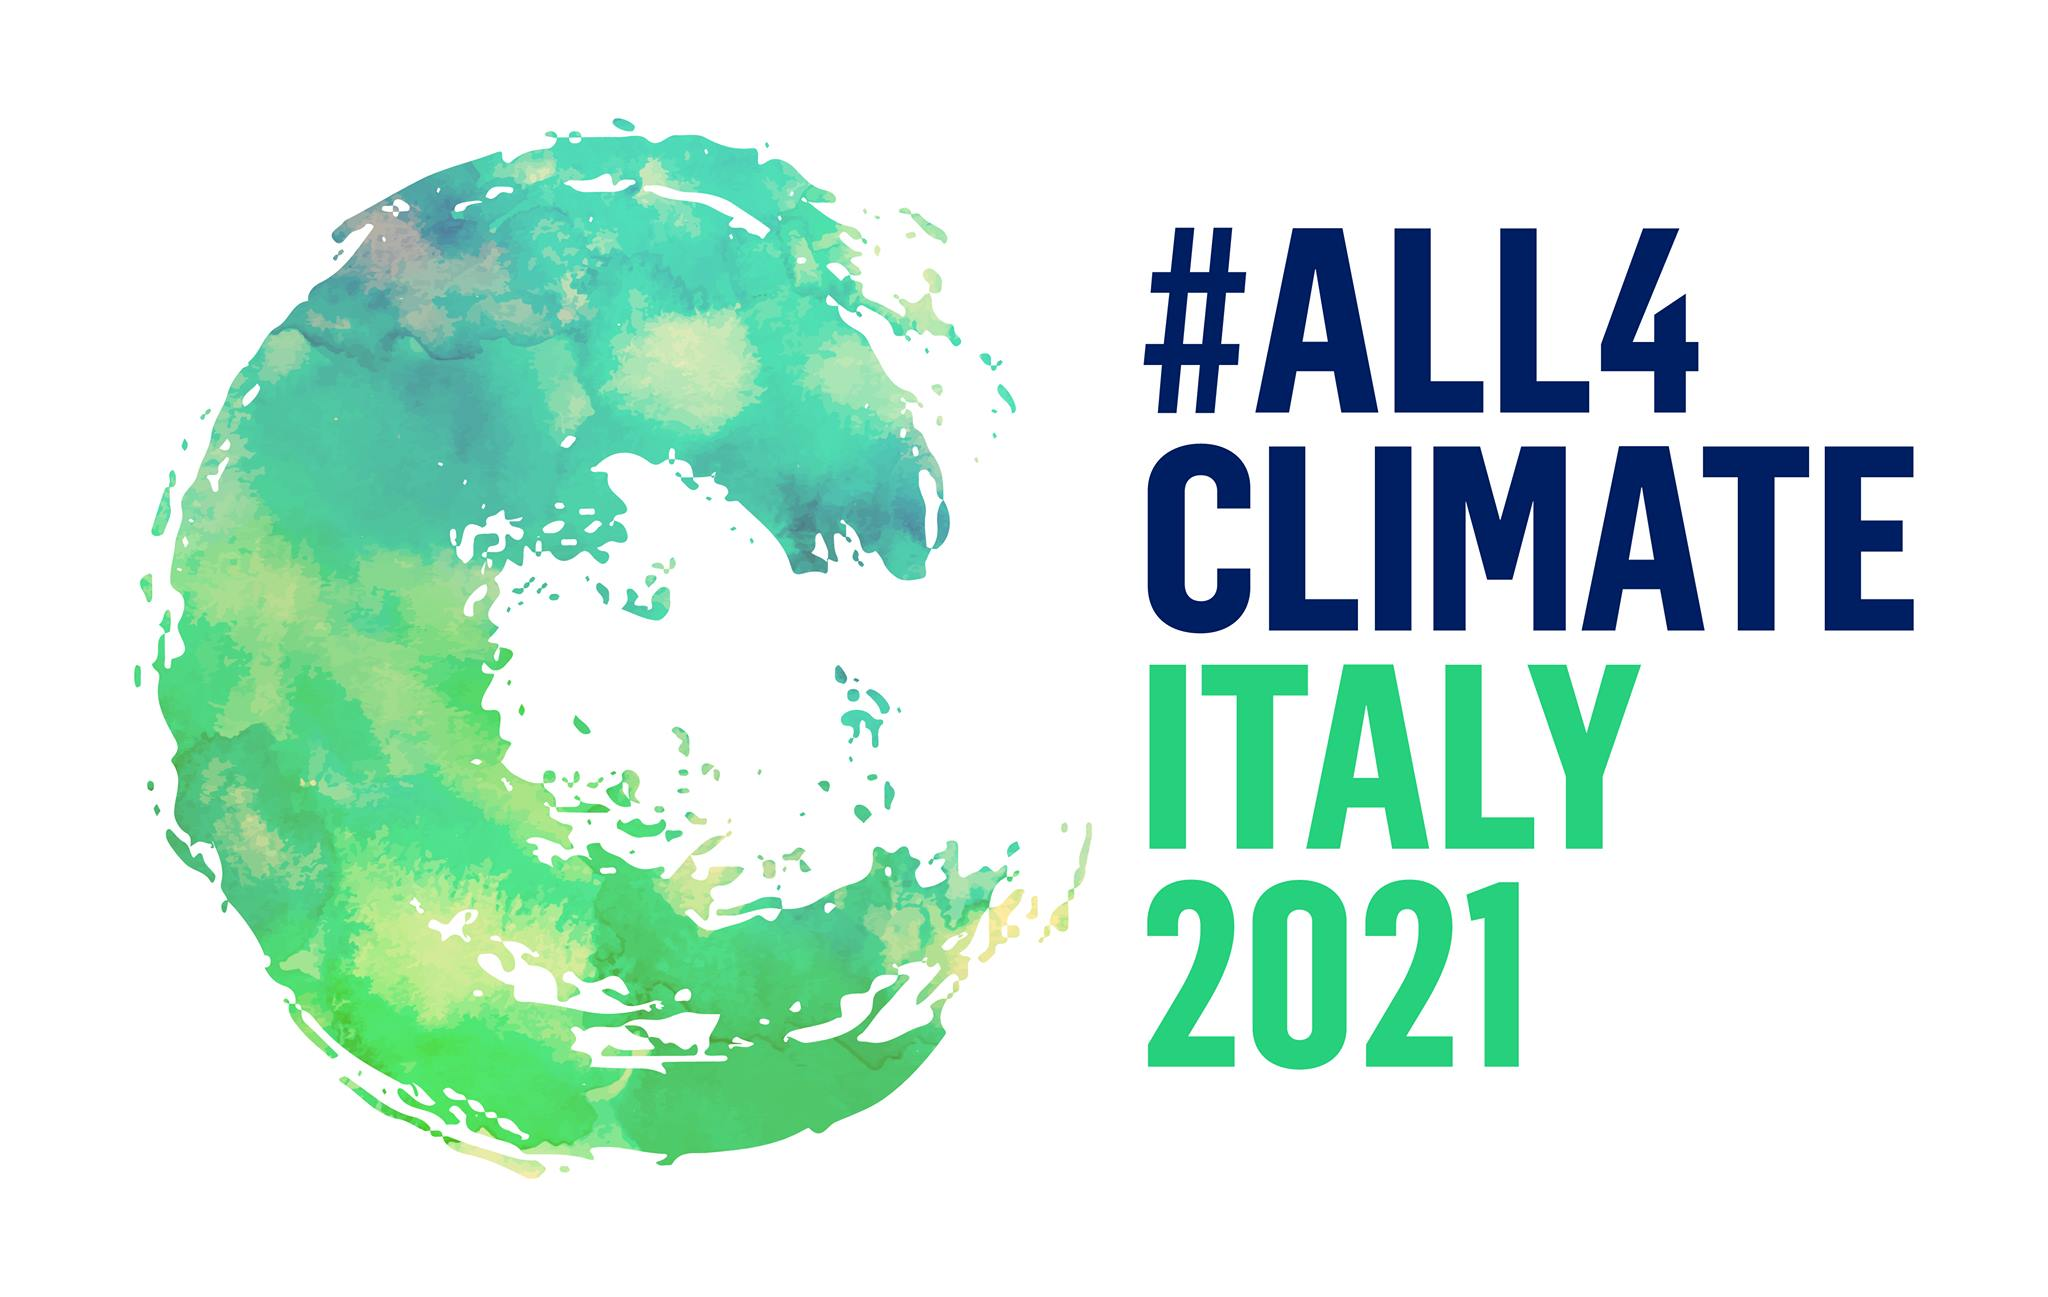 Logo All 4 climate Italy 2021